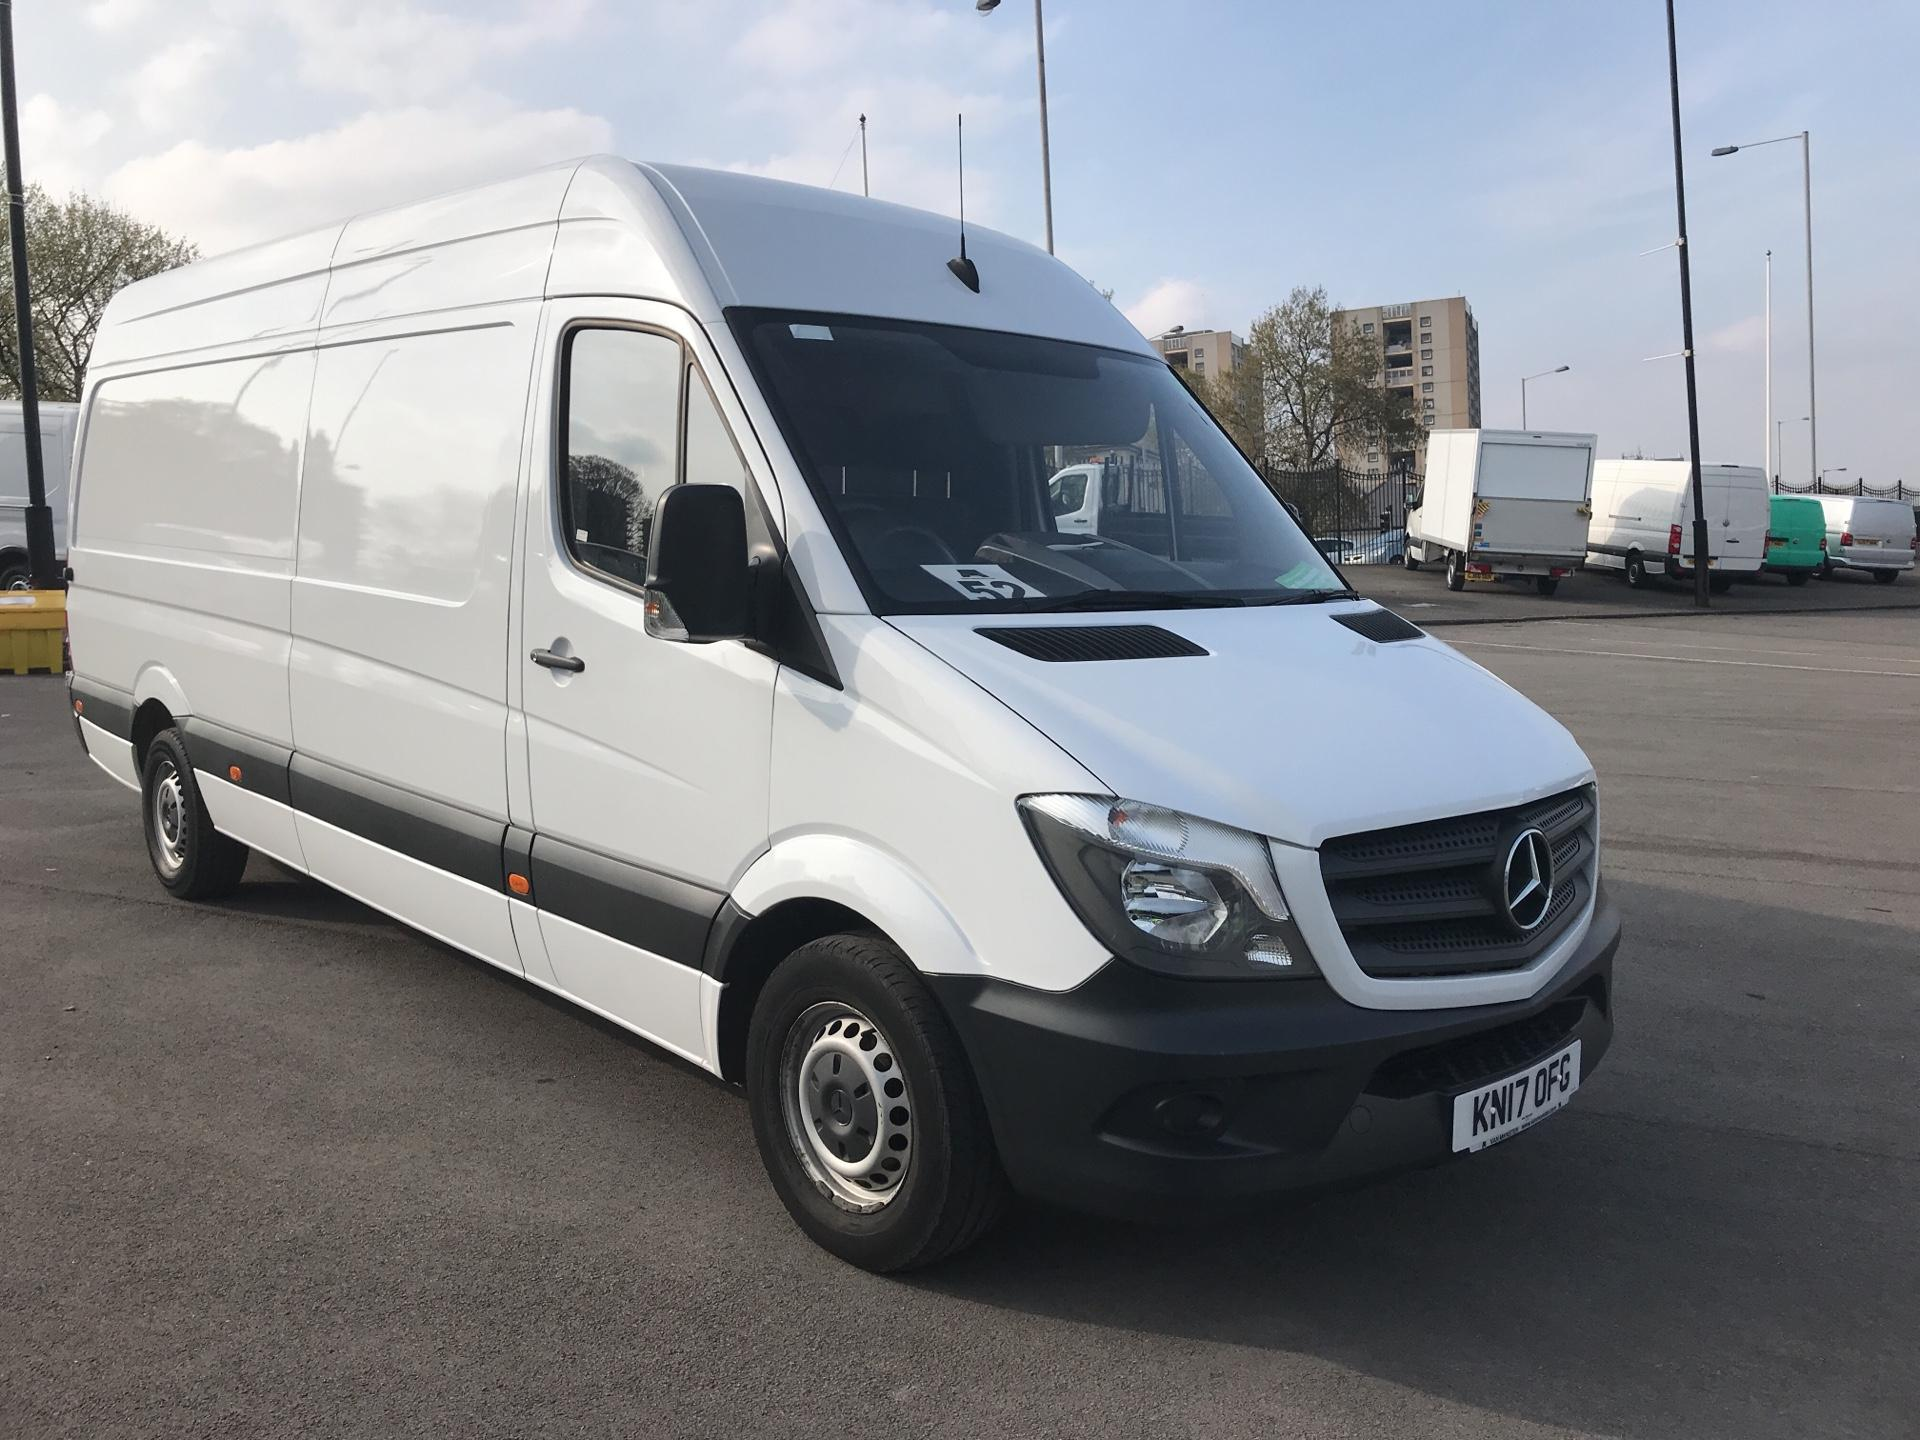 2017 Mercedes-Benz Sprinter 3.5T High Roof Van (KN17OFG)